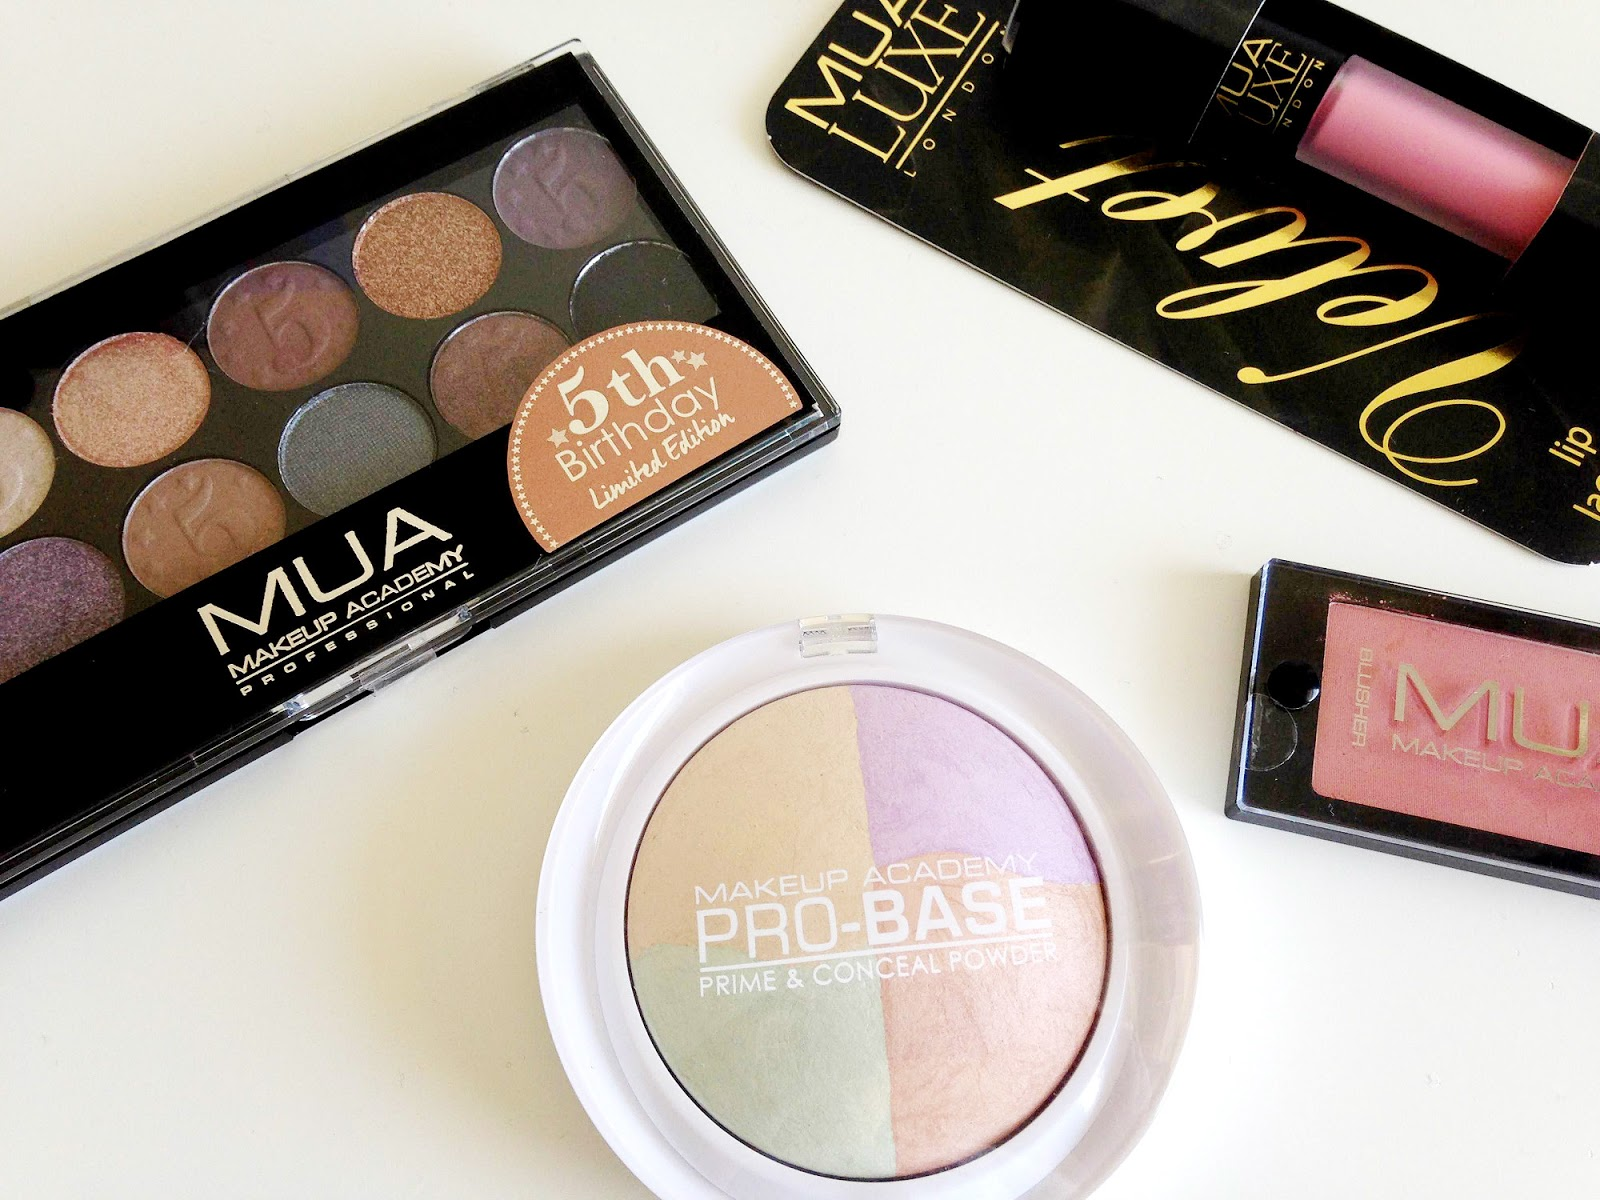 Free MUA Limited Edition Eyeshadow Palette